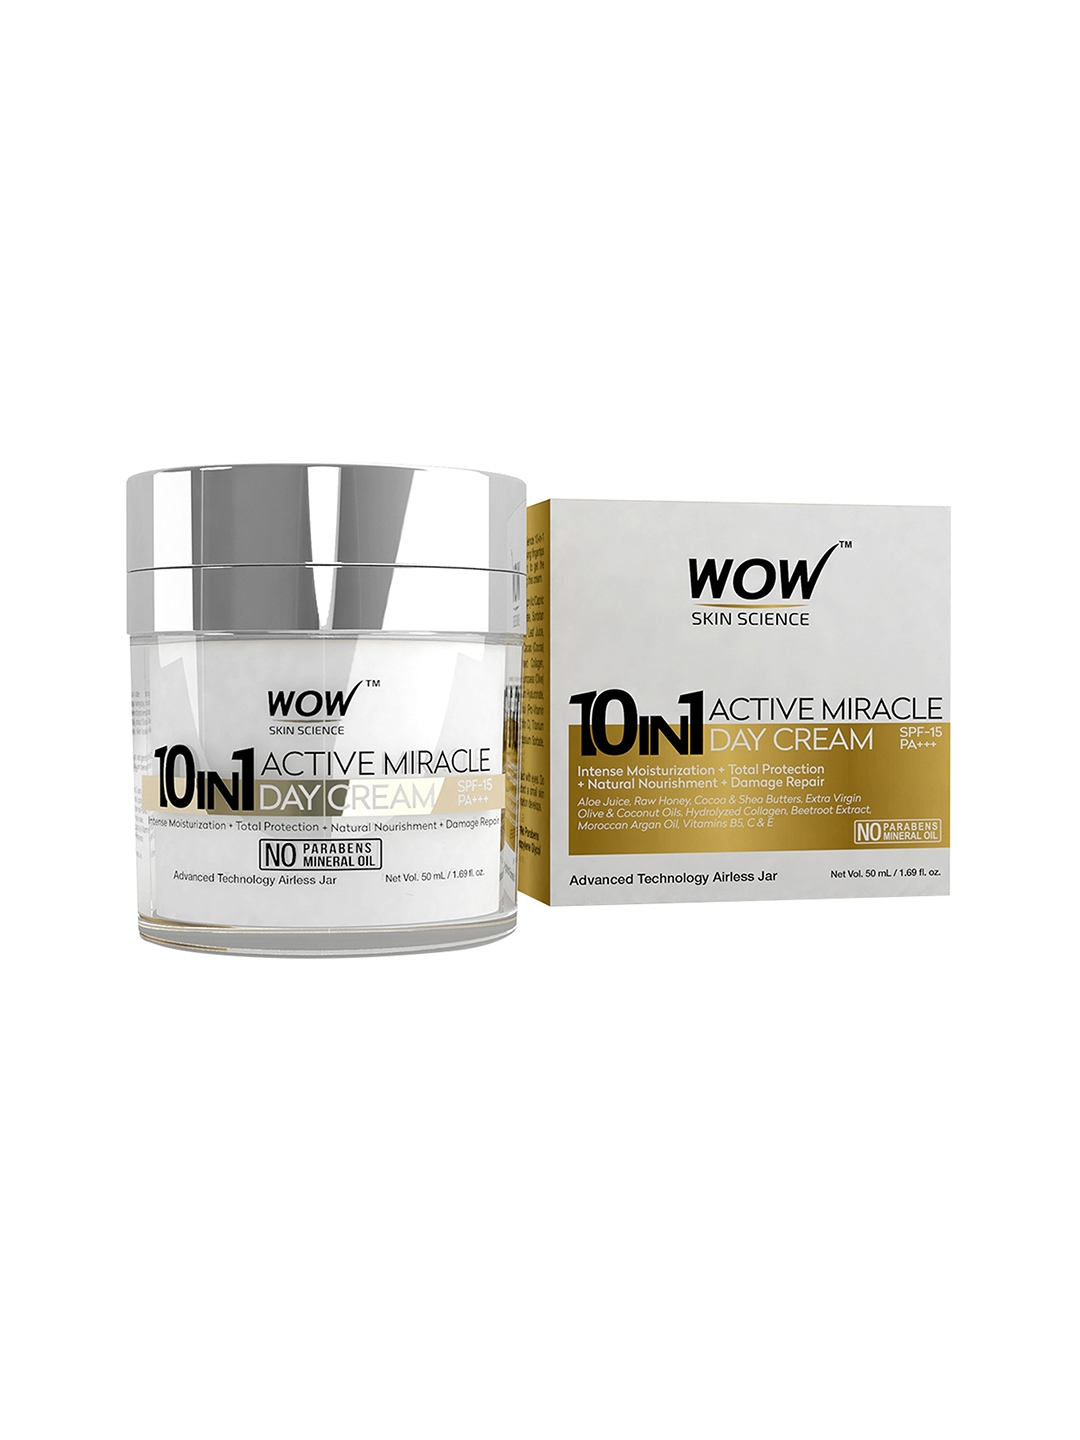 WOW Skin Science 10 in 1 Active Miracle Day Cream SPF 15 PA++   50ml